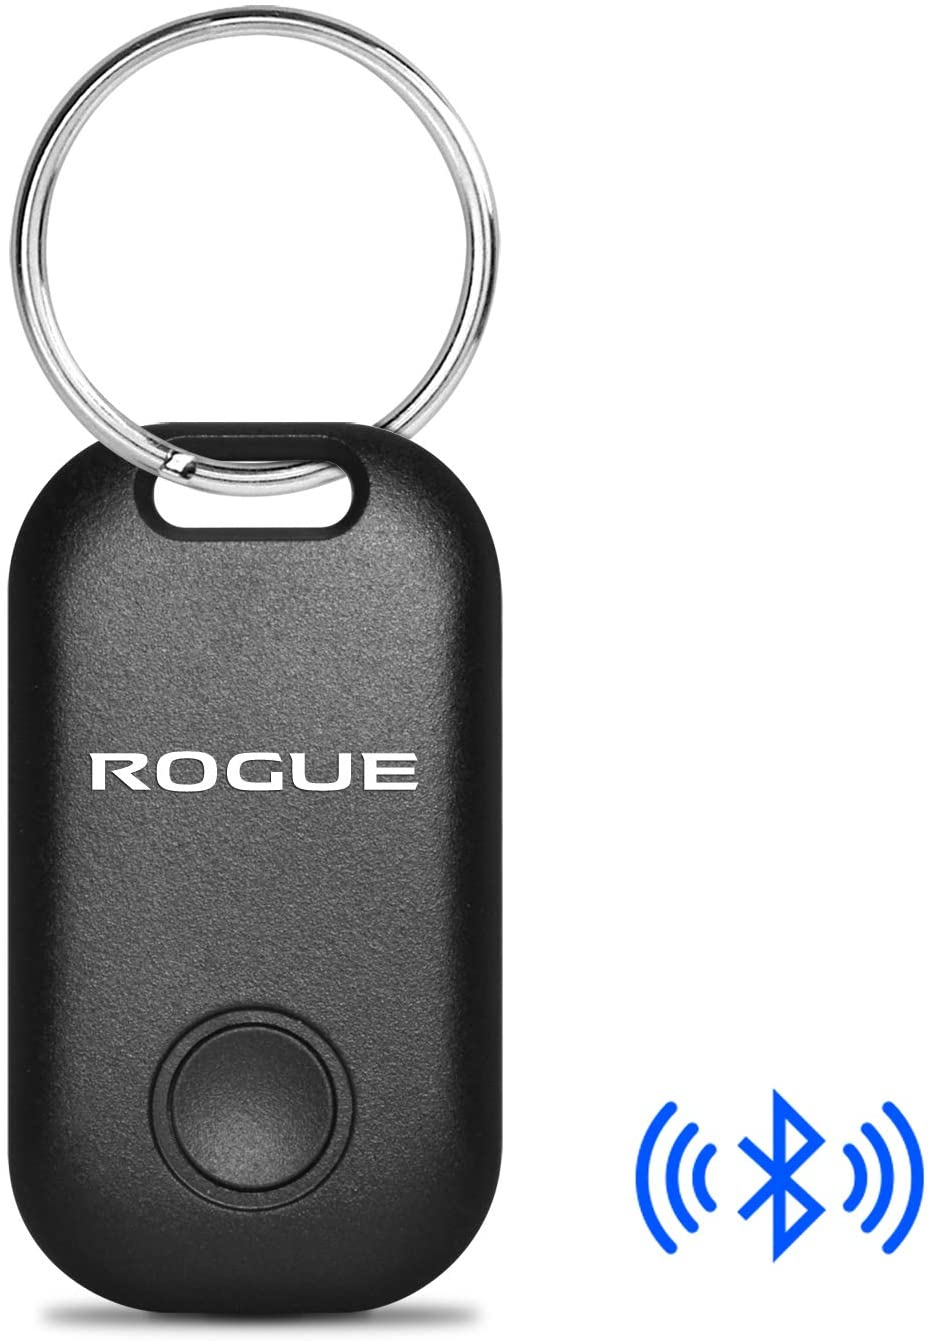 iPick Image for - Nissan Rogue Bluetooth Smart Remote Key Finder Key Chain Key-Ring Tracking Device Work with Cell Phone, Black